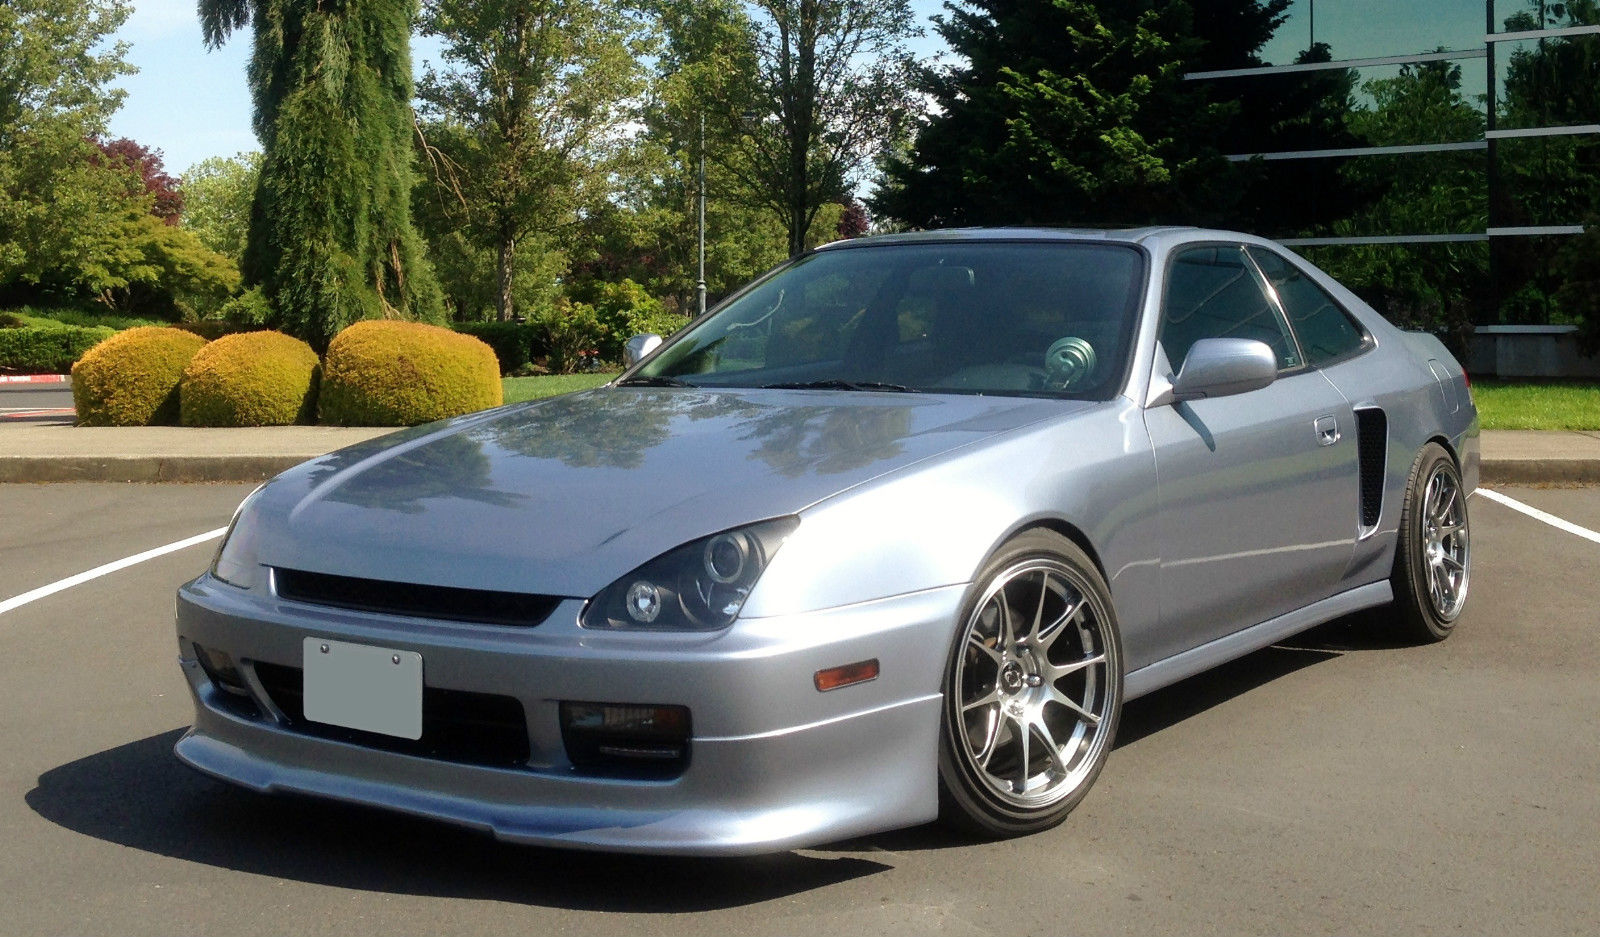 For Sale: Twin-Engine Honda Prelude – Engine Swap Depot on